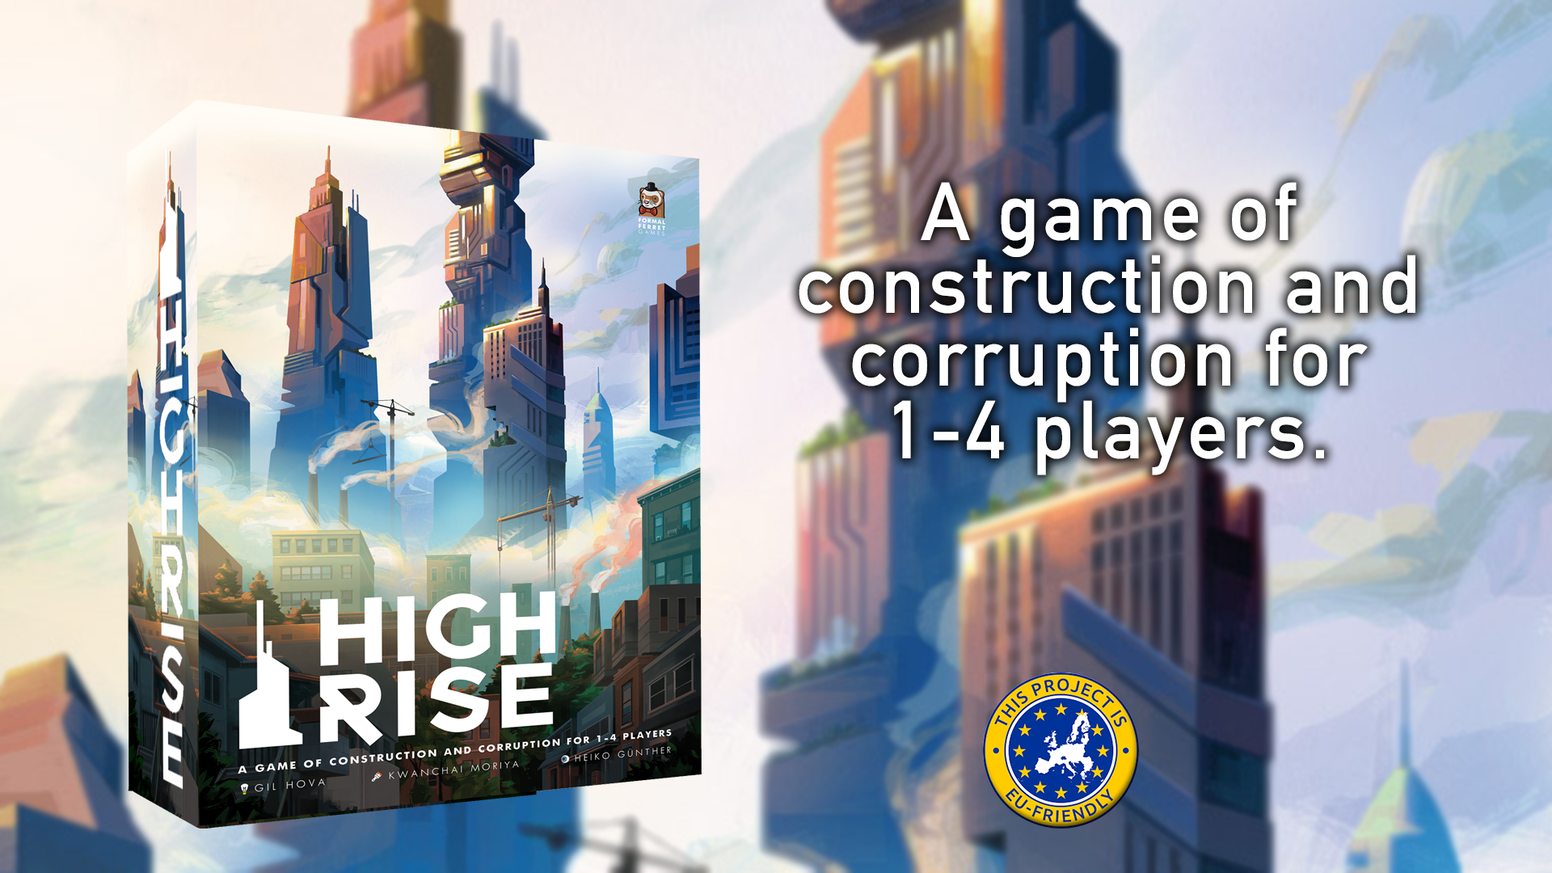 A game of construction and corruption for 1-4 players.